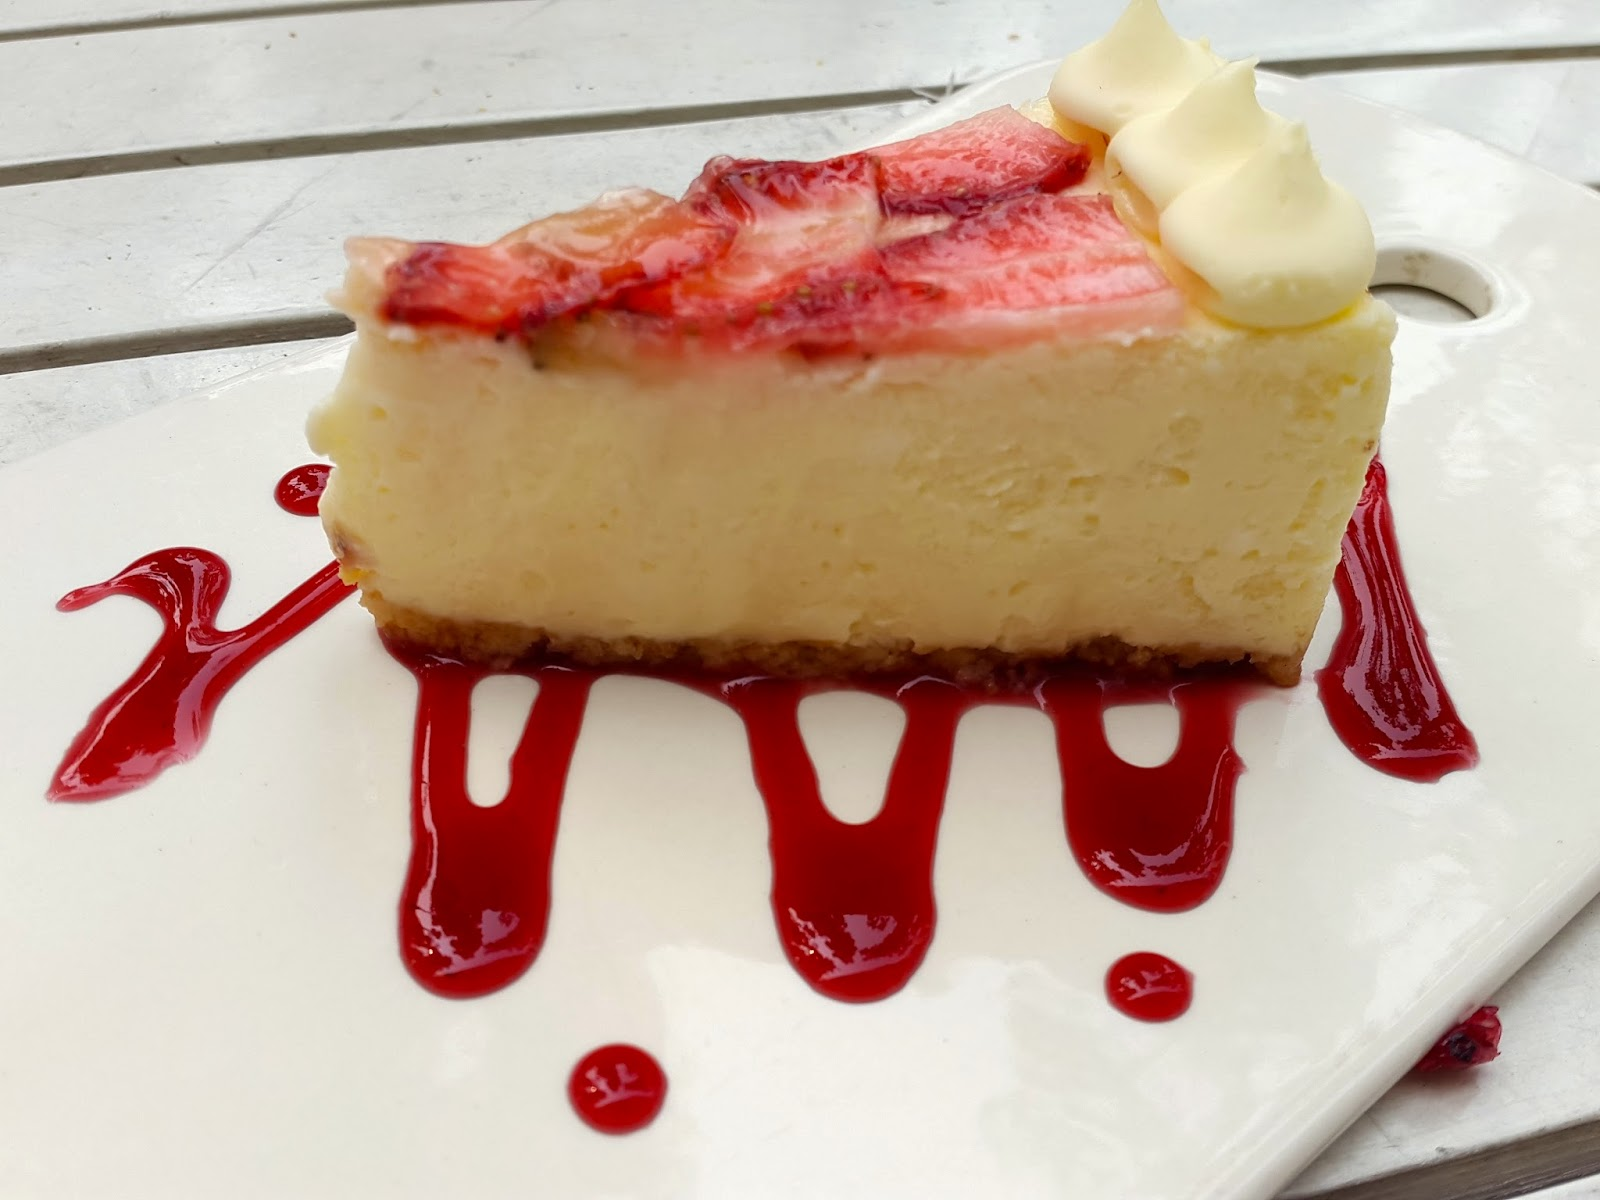 Strawberry Cheesecake at Symmetry Cafe Singapore